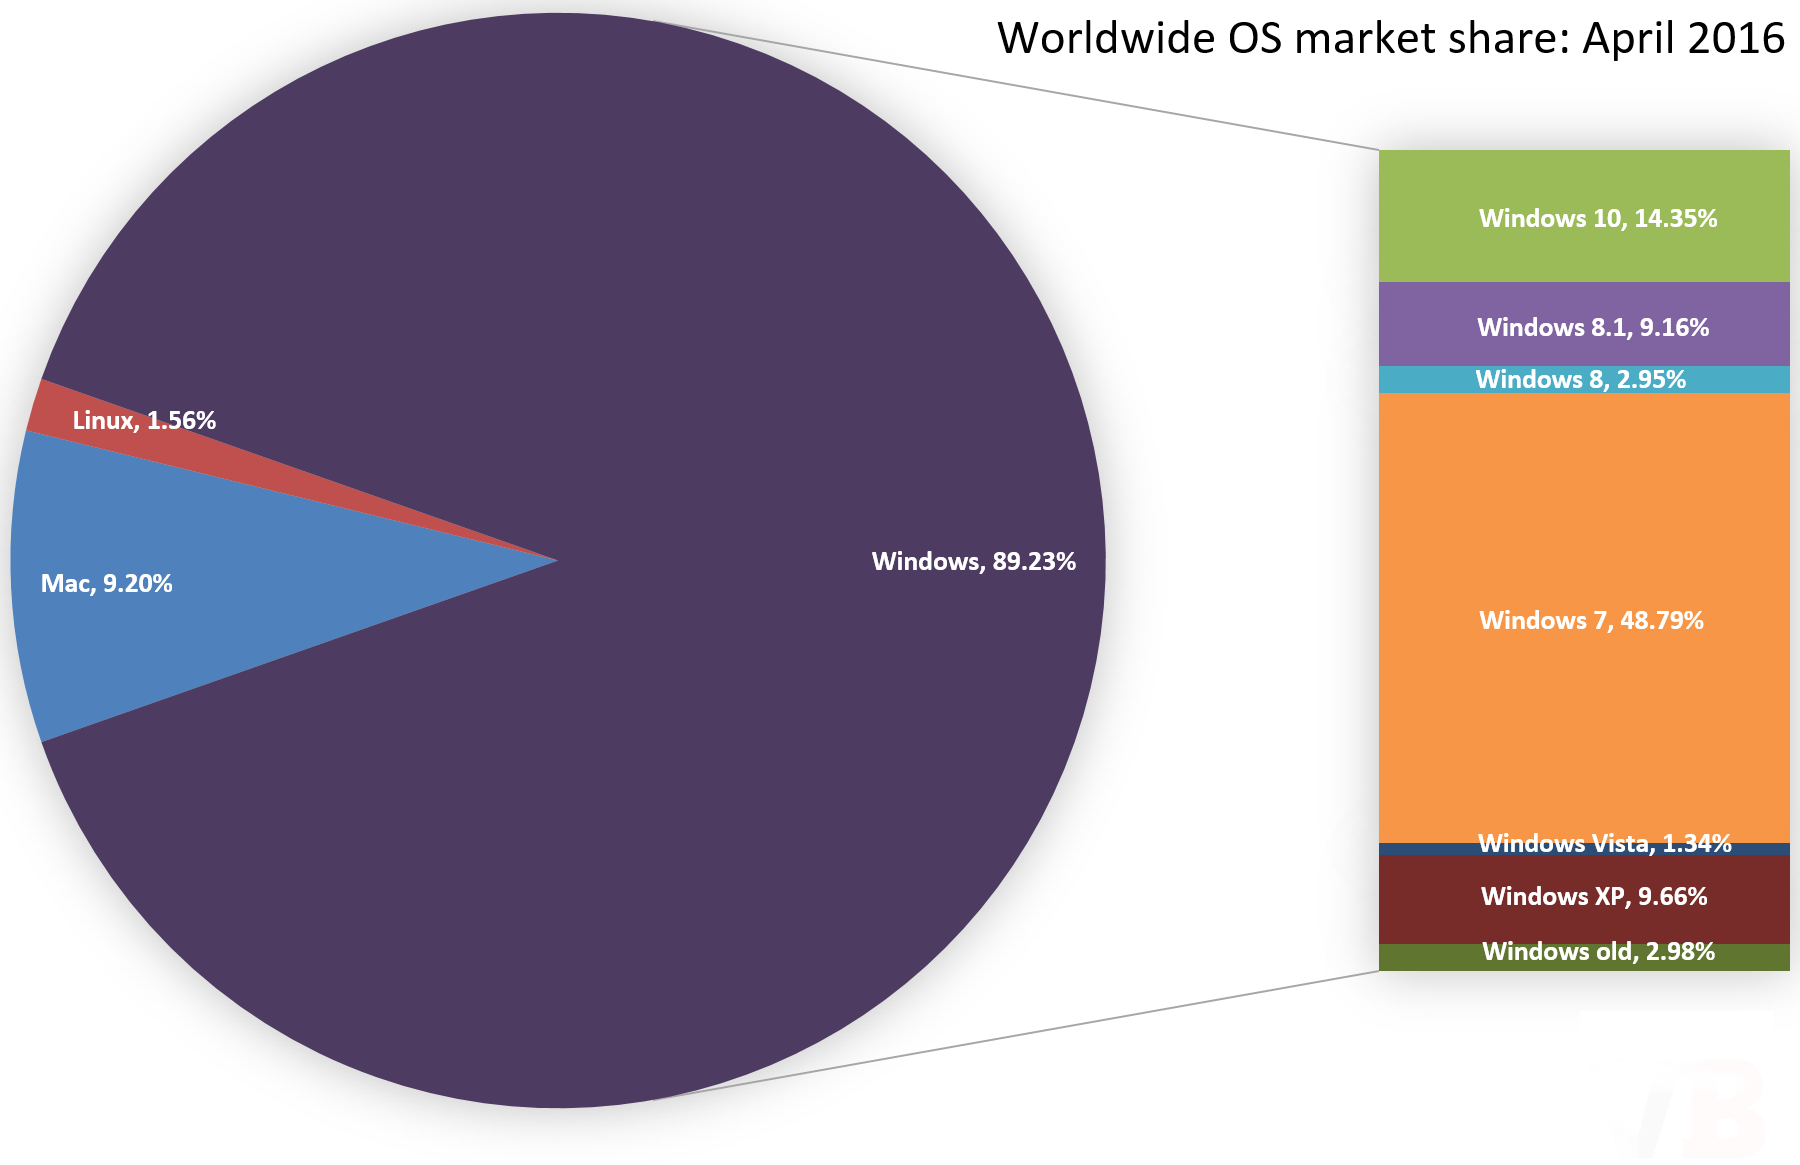 Windows 7 market share drops while Windows 10 market share surprisingly low